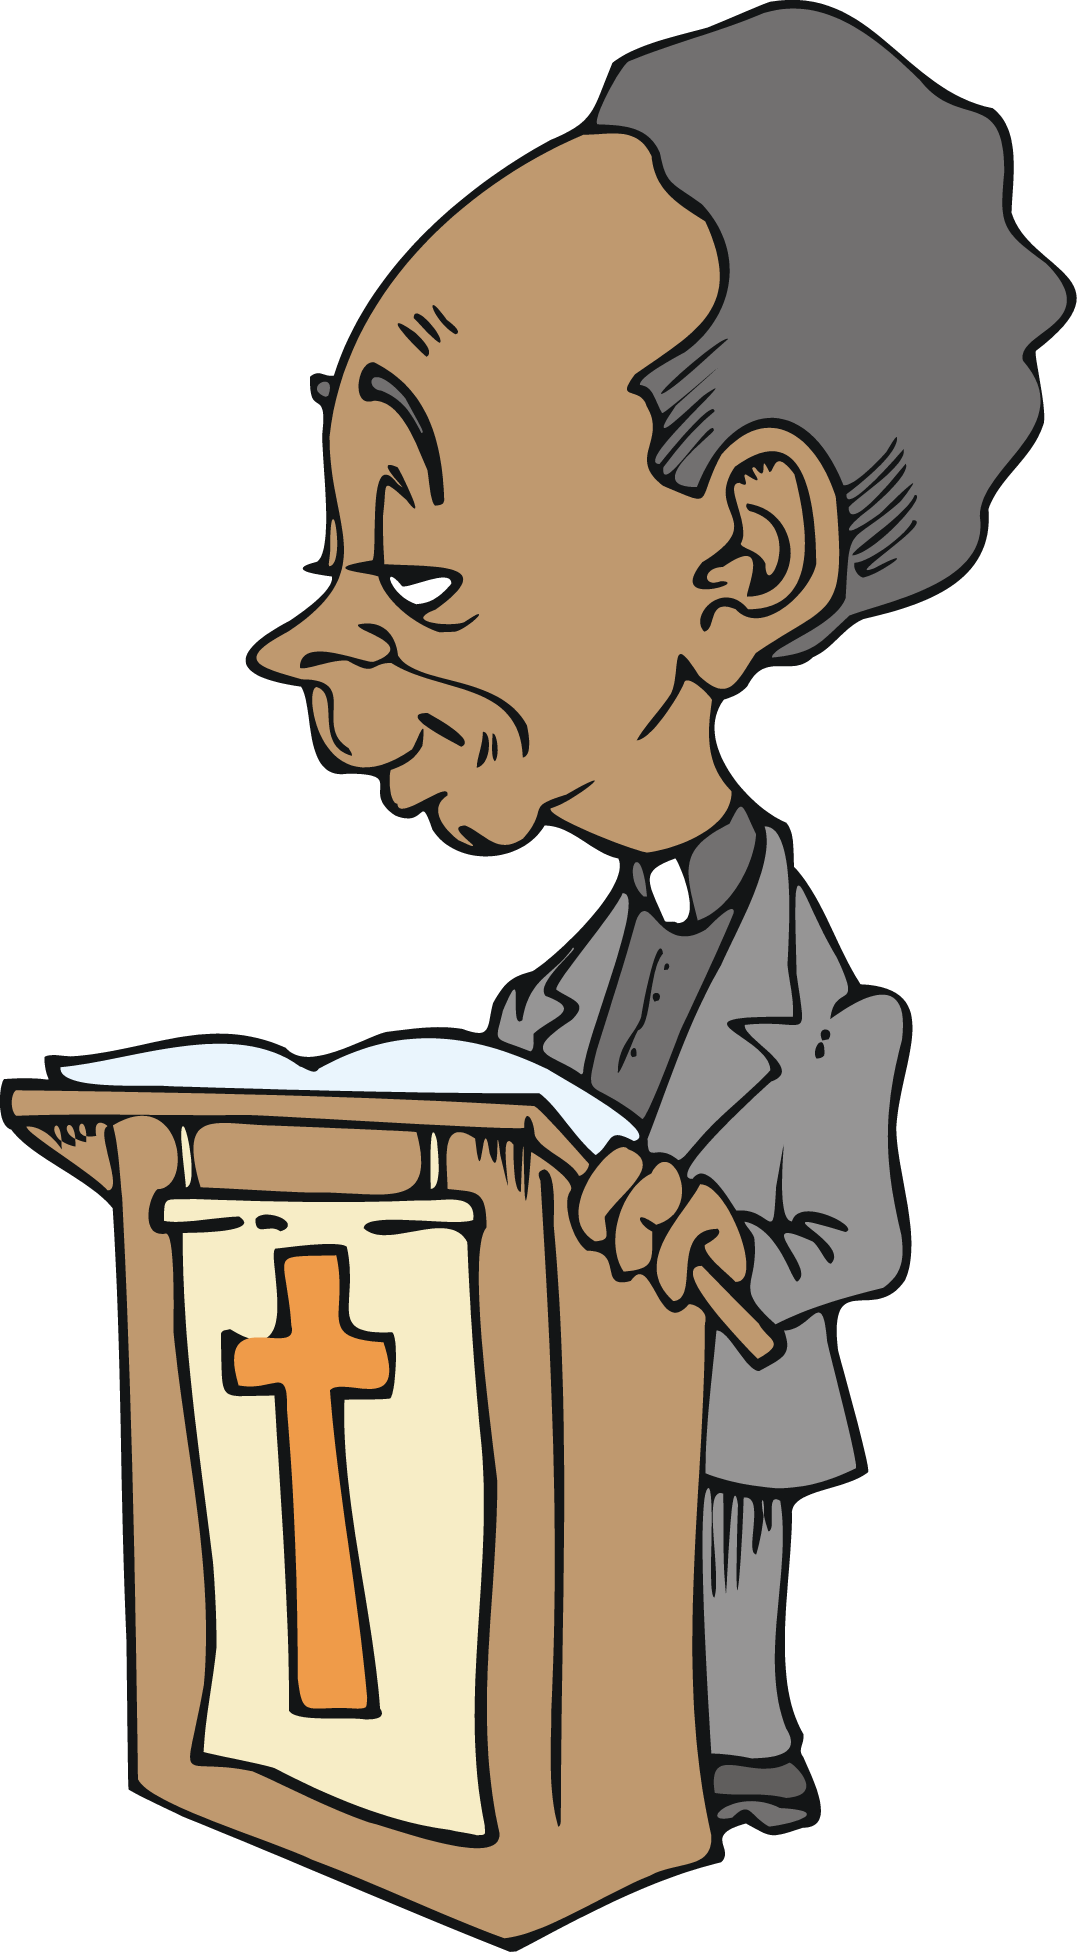 Minister Clipart | Free download best Minister Clipart on ...